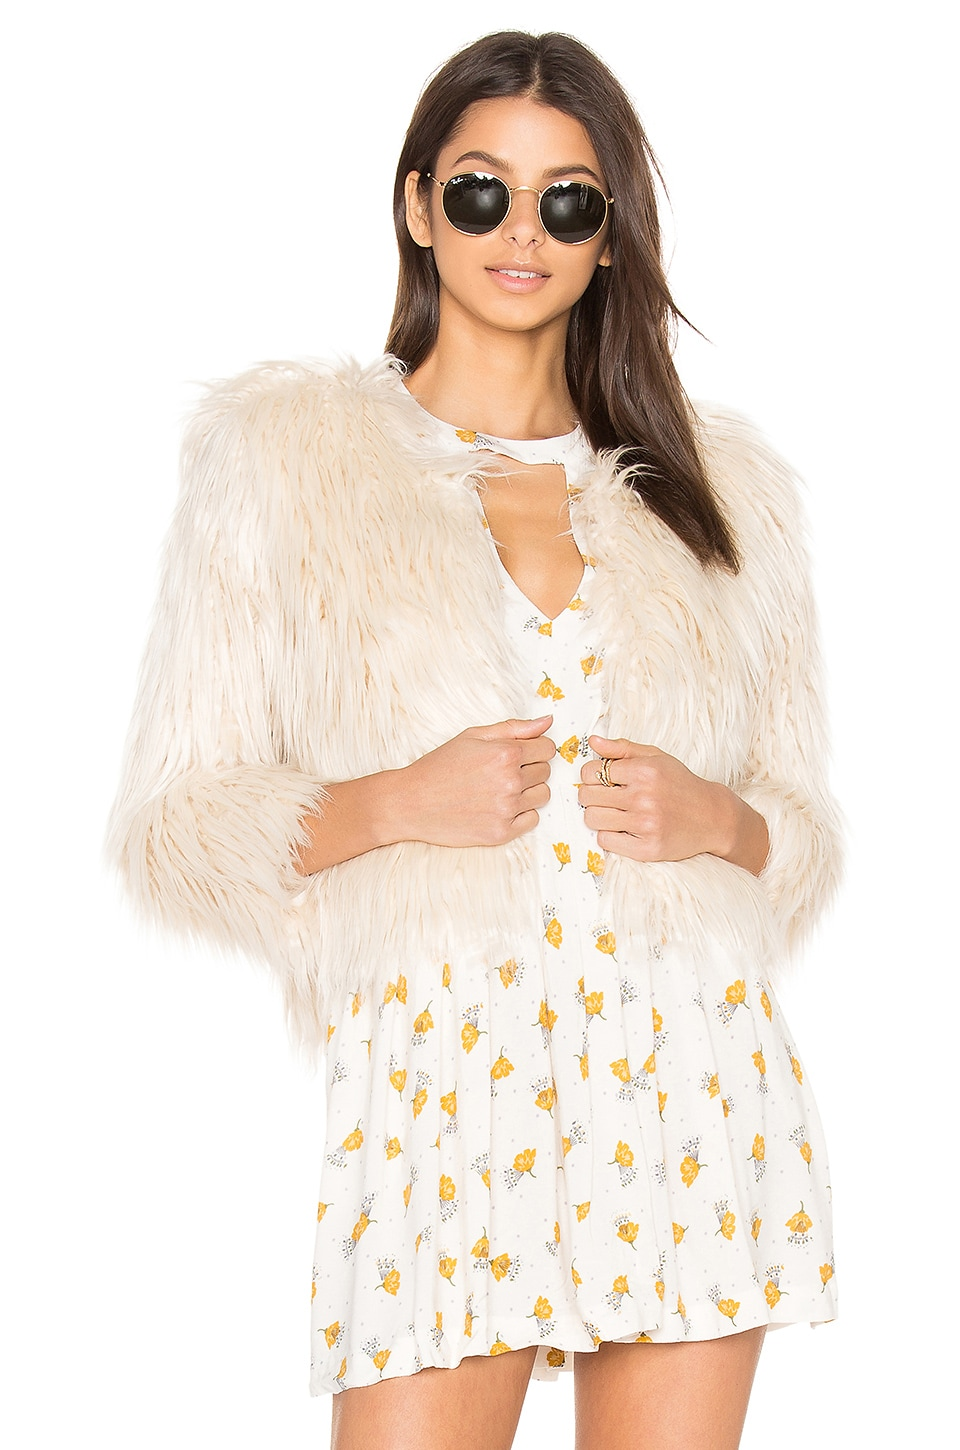 The Boxy Faux Fur Jacket by MOTHER